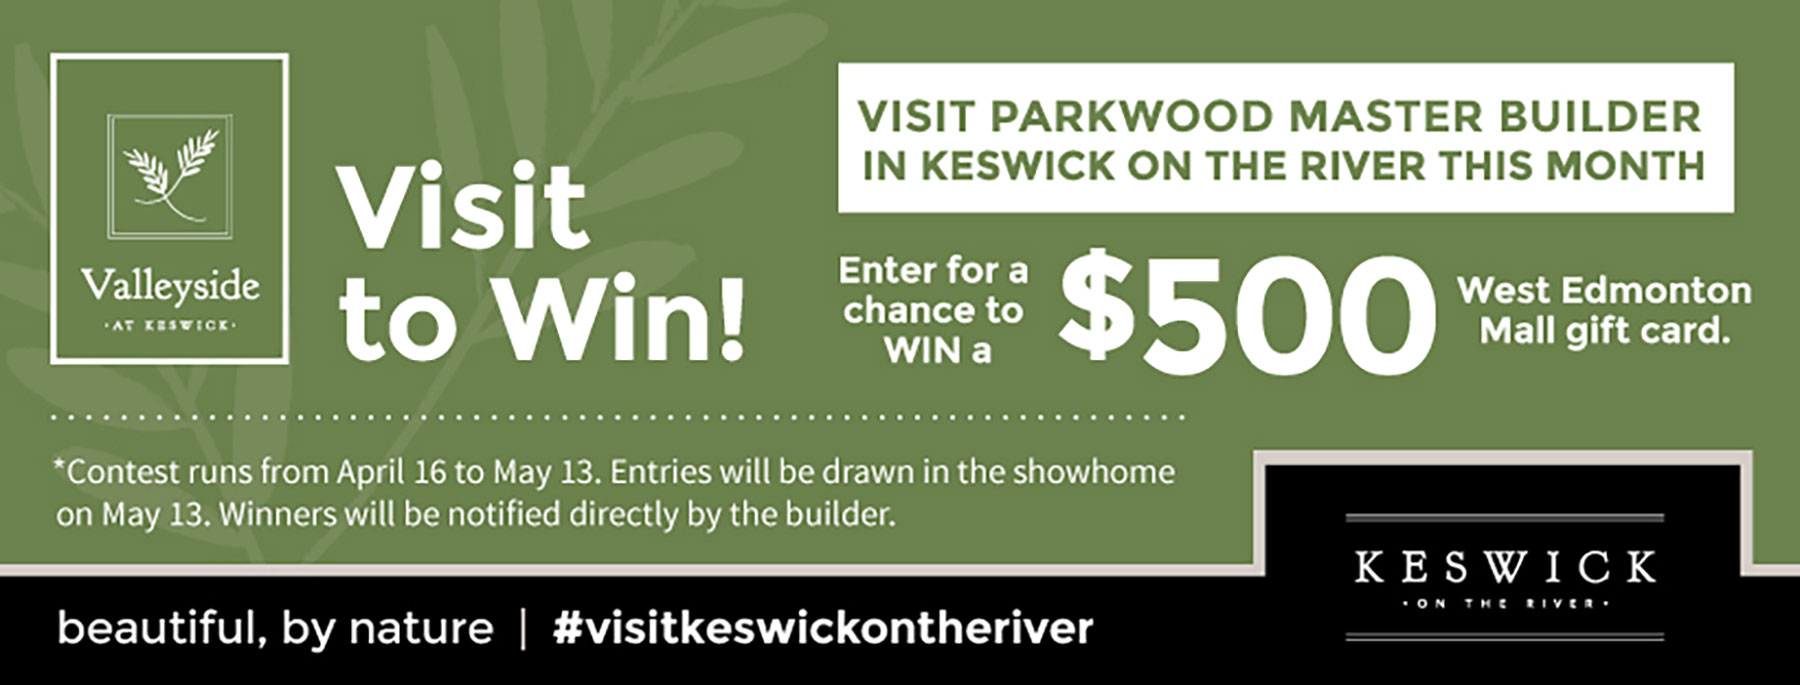 Visit to win at parkwood's keswick on the river show home